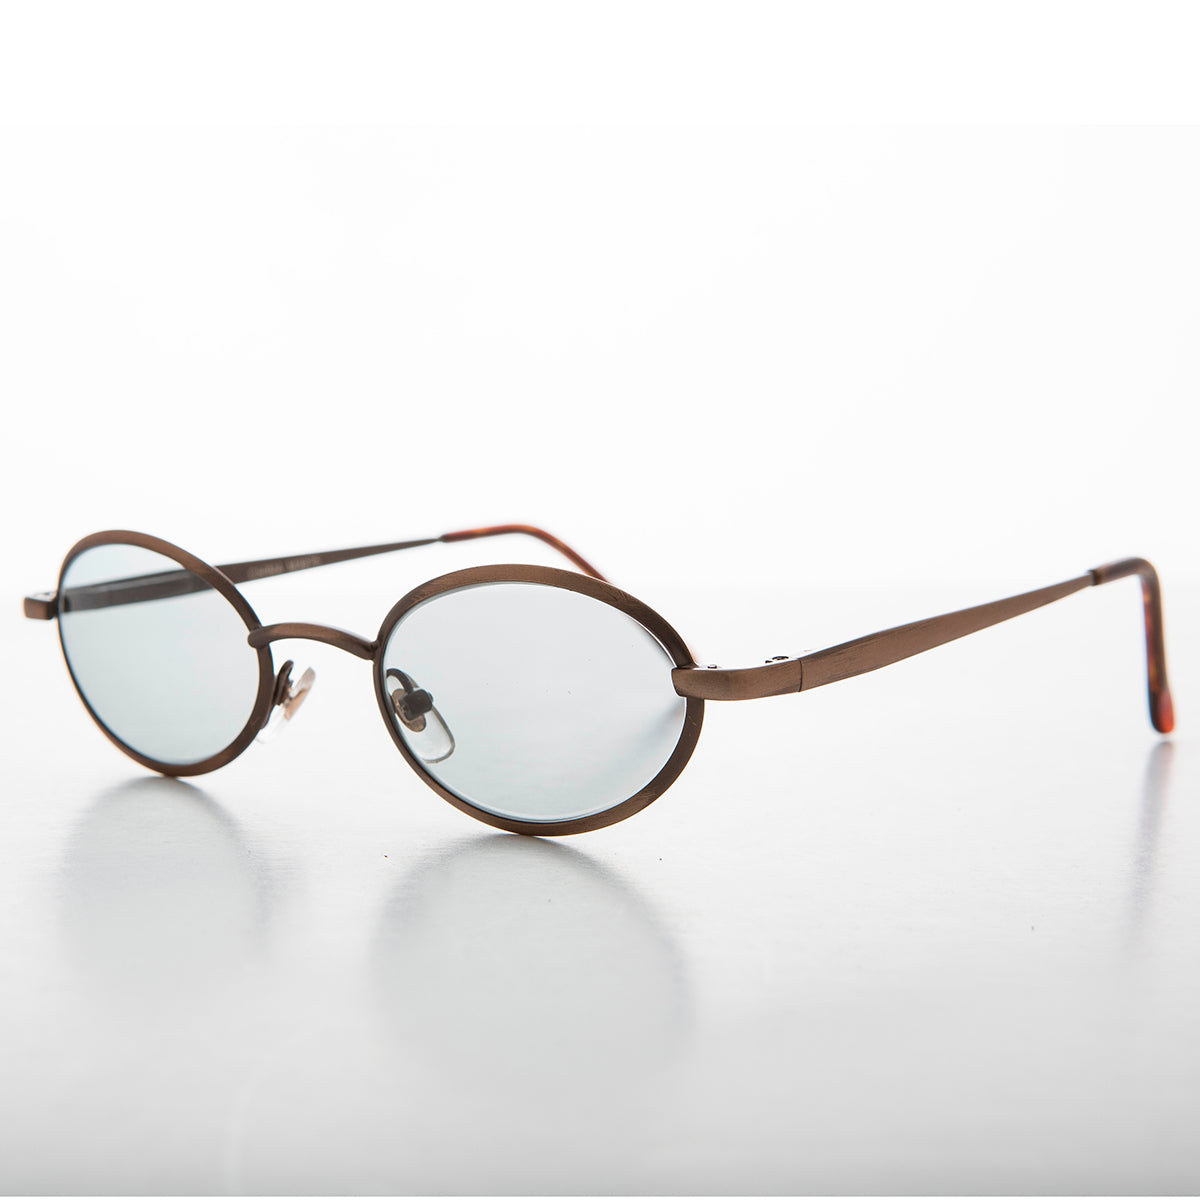 Transition Lens Rare Oval Vintage Sunglass